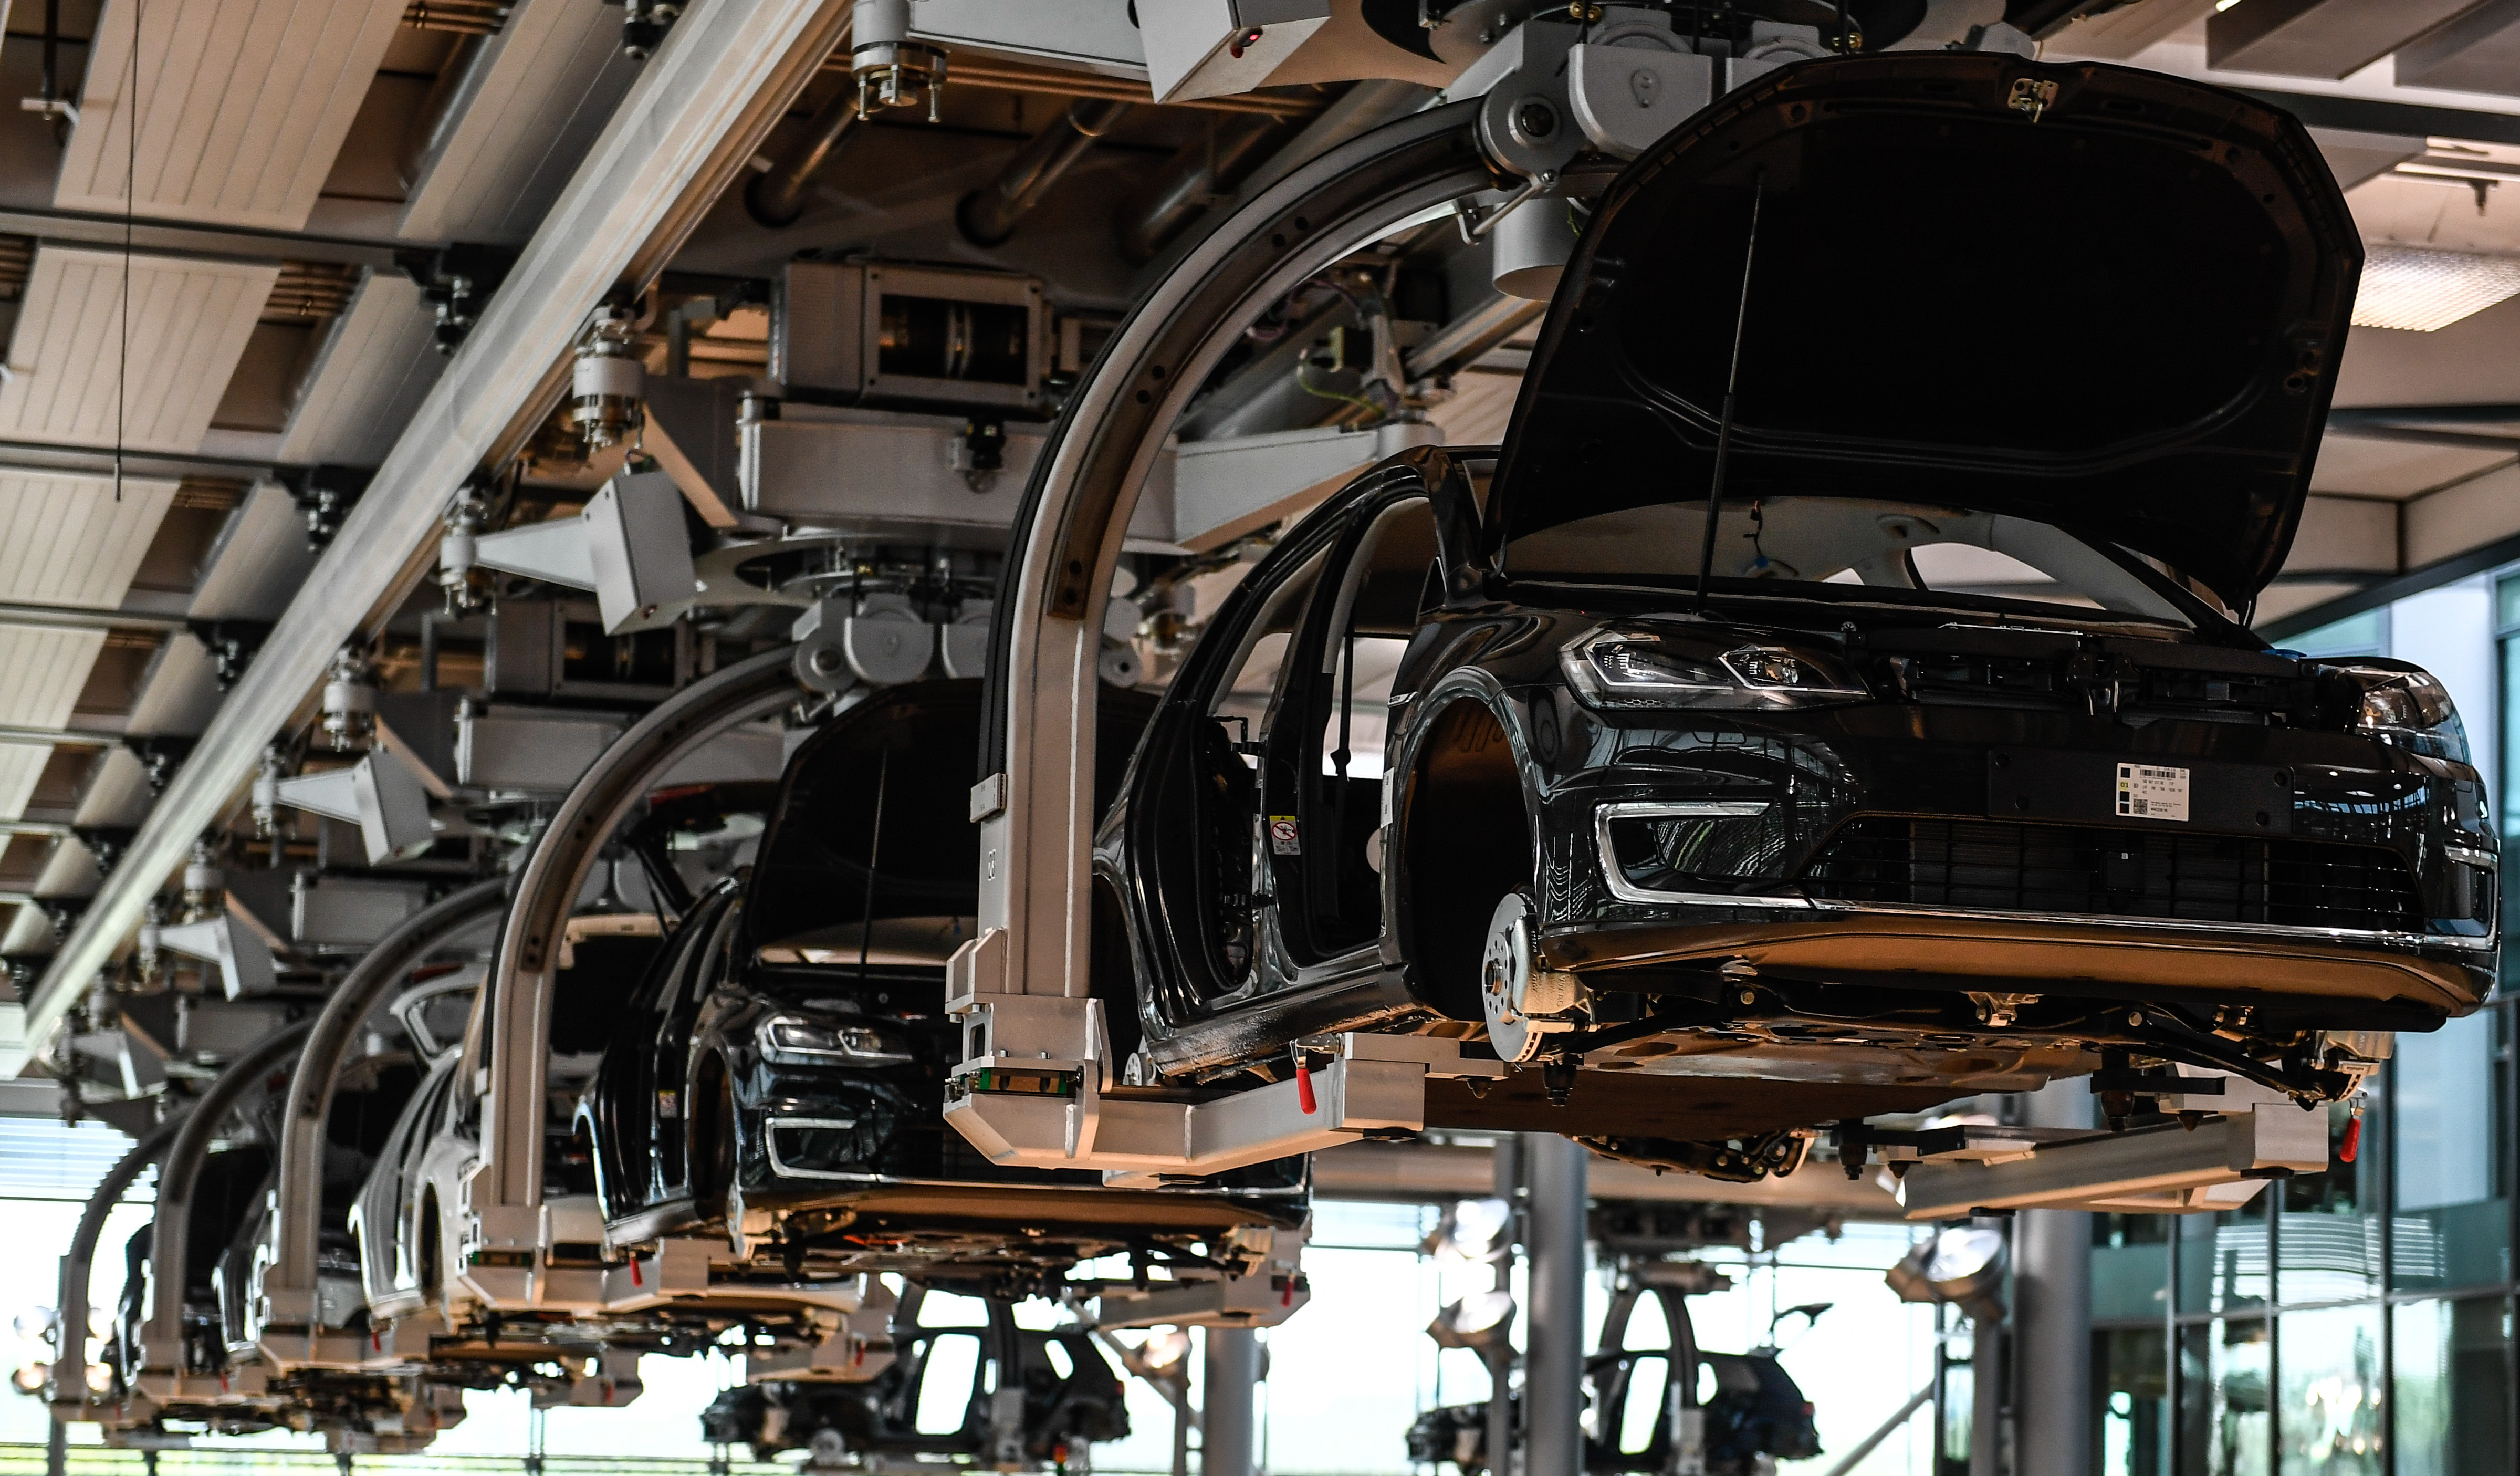 A view of the e-Golf production line at the so-called 'Glaeserne Manufaktur' ('Transparent Factory') in Dresden, Germany, 25 April 2017. In April 2017 the German car automaker VW started a new production line of battery-powered electric cars. According to the company, the Dresden Transparent Factory produces about 25 Volkswagen e-Golf per day